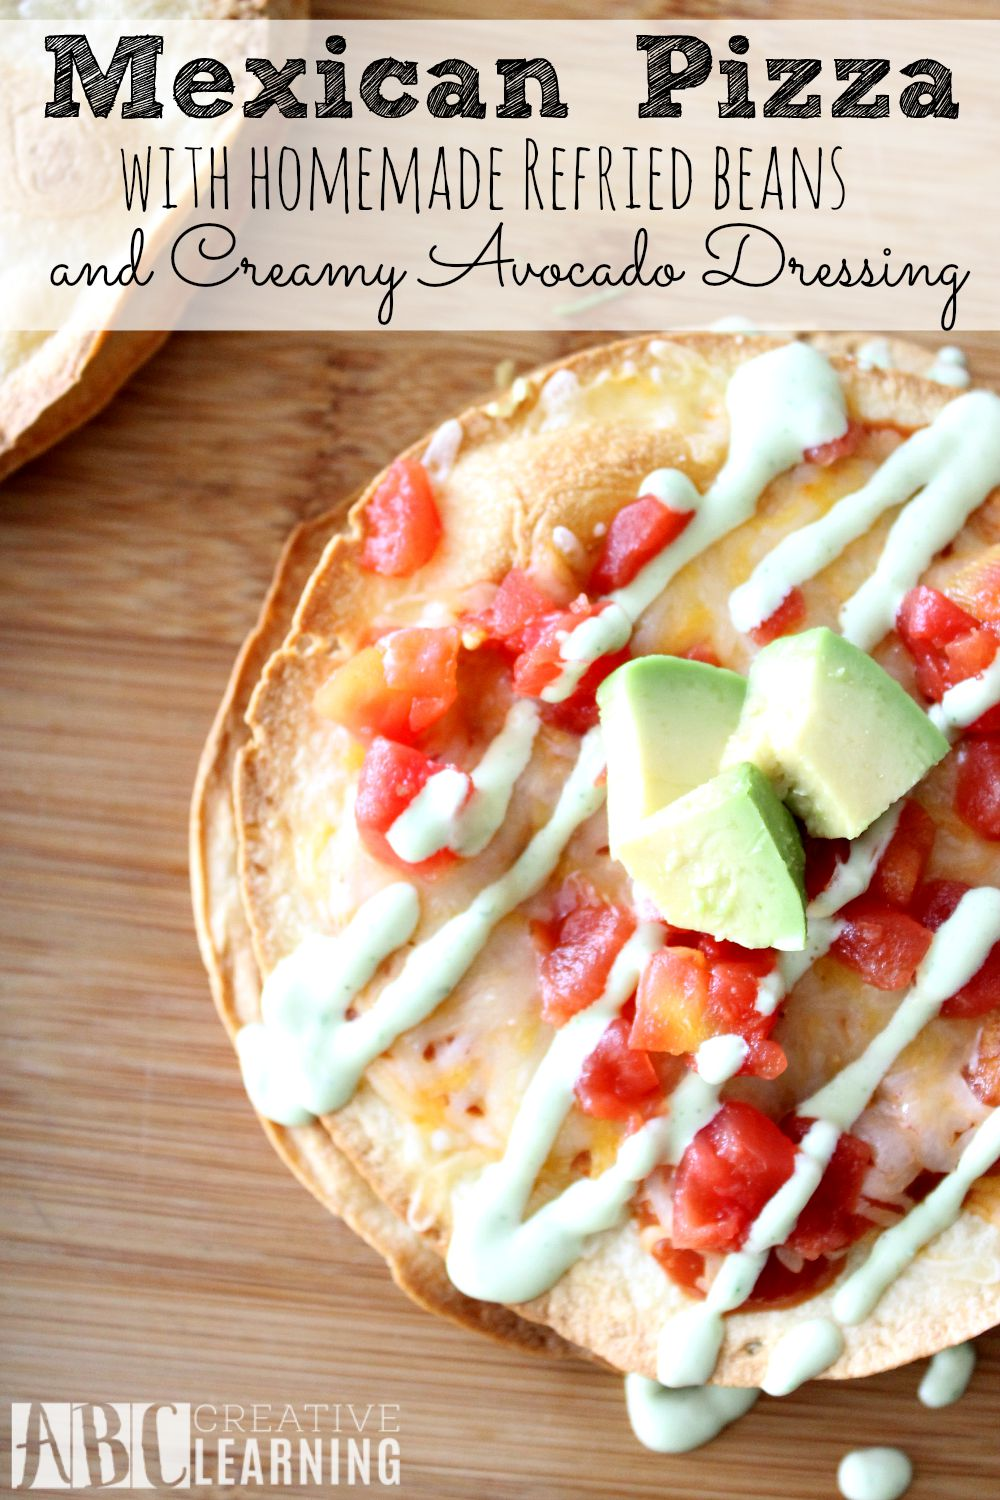 Mexican Pizza with Homemade Refried Beans and Creamy Avocado Dressing